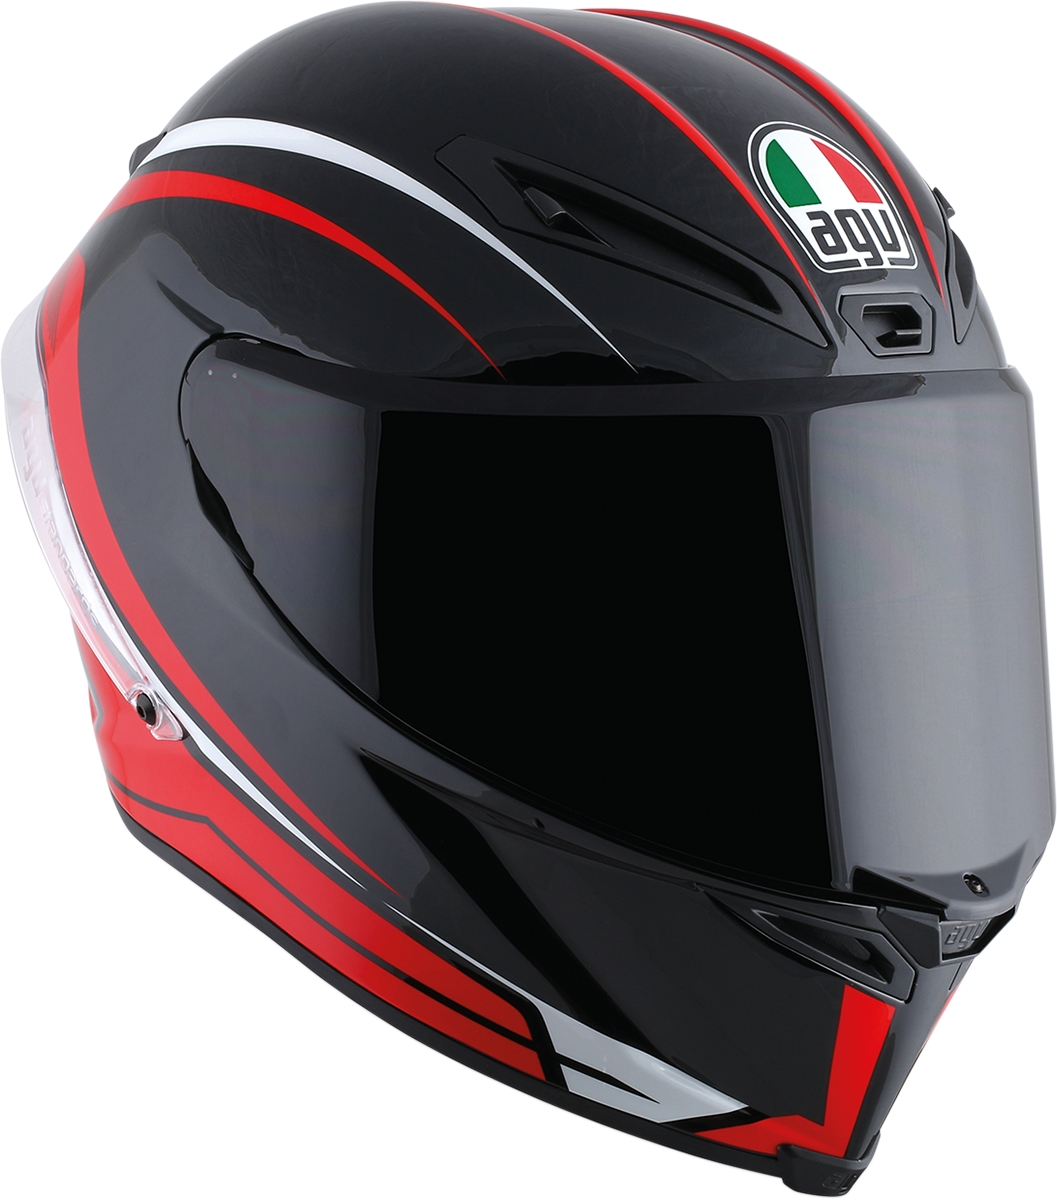 agv corsa r arrabbiata motorcycle helmet black red all sizes ebay. Black Bedroom Furniture Sets. Home Design Ideas